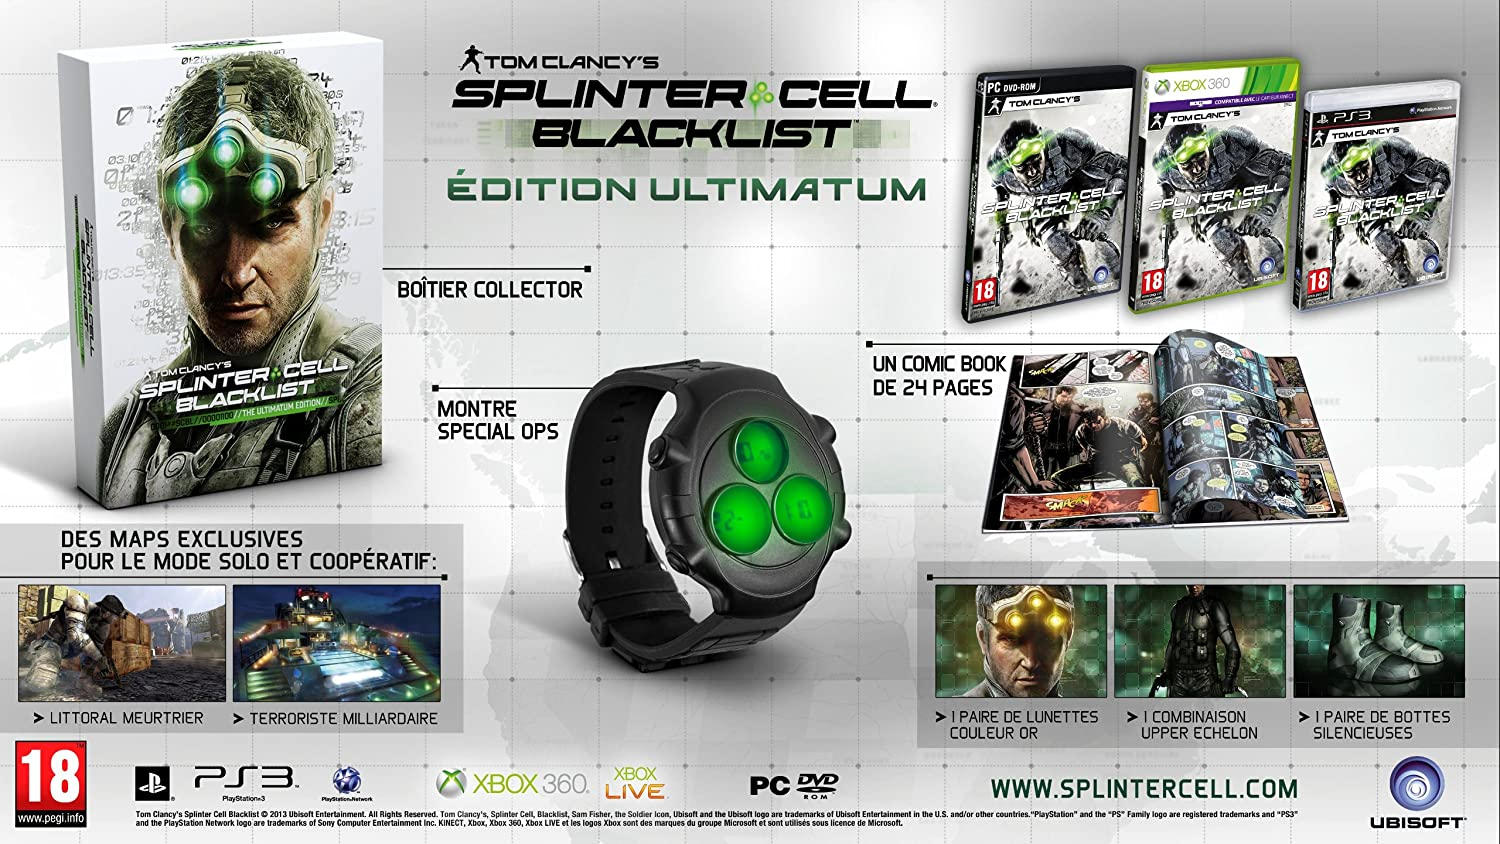 [ACTU] Splinter Cell : Blacklist / Edition Ultimatum